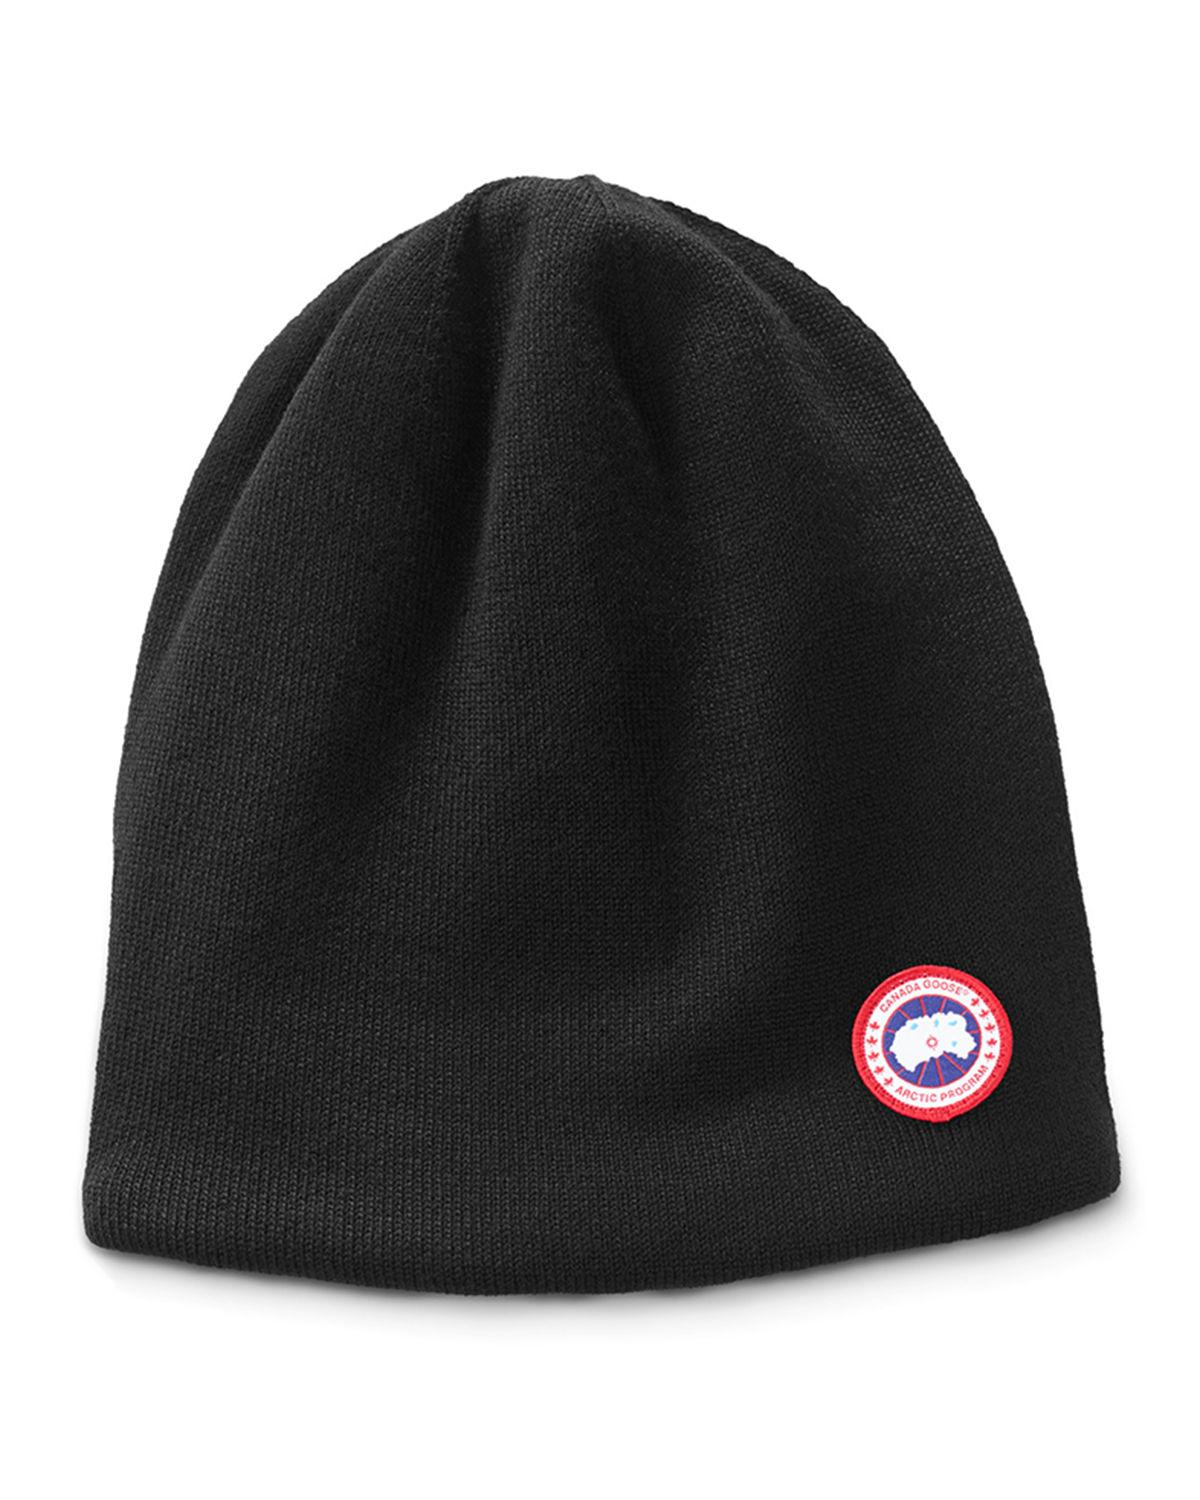 21aab521a28 Canada Goose Men S Standard Logo Toque Winter Beanie Hat In Black ...